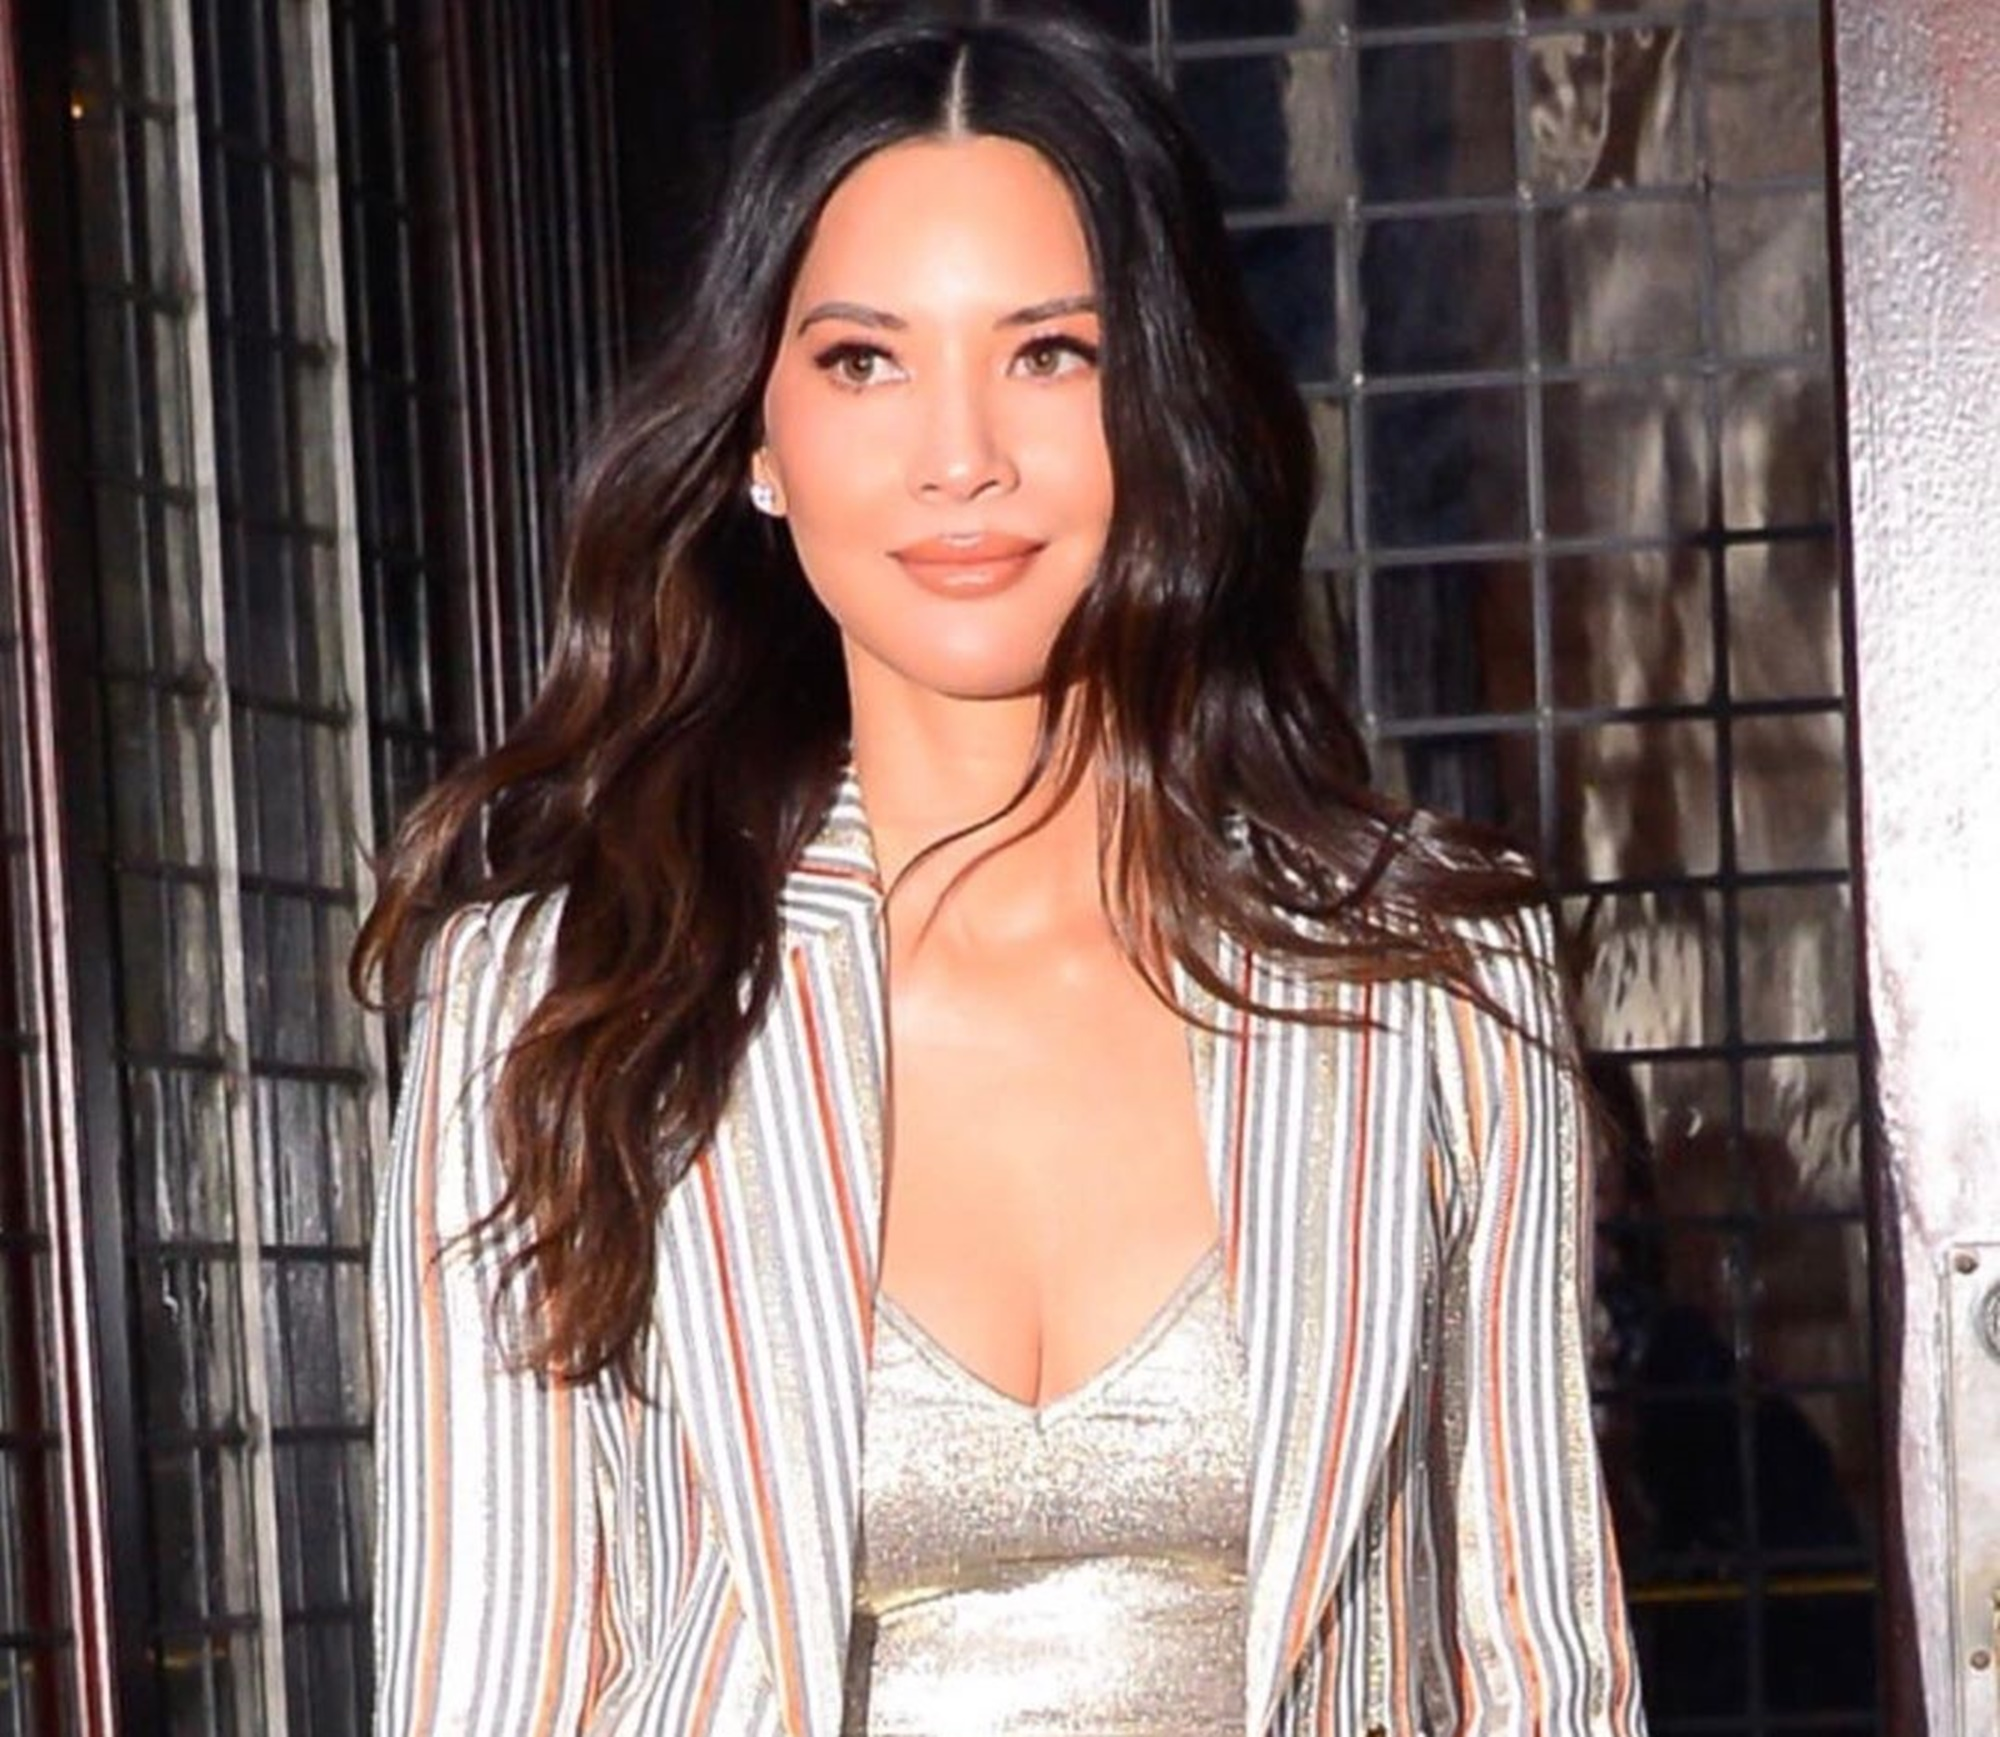 olivia-munn-takes-on-fashion-blogs-and-supporters-say-it-was-a-brave-and-necessary-move